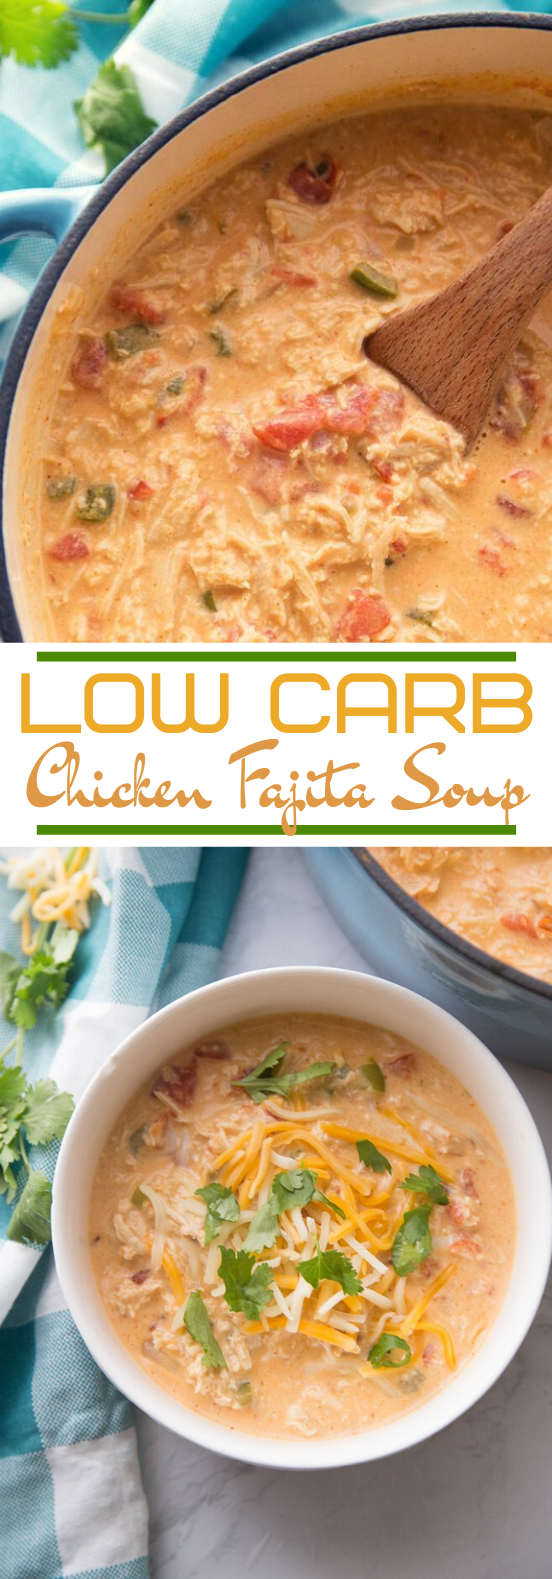 Low Carb Chicken Fajita Soup #lowcarb #dinner #soup #keto #recipes